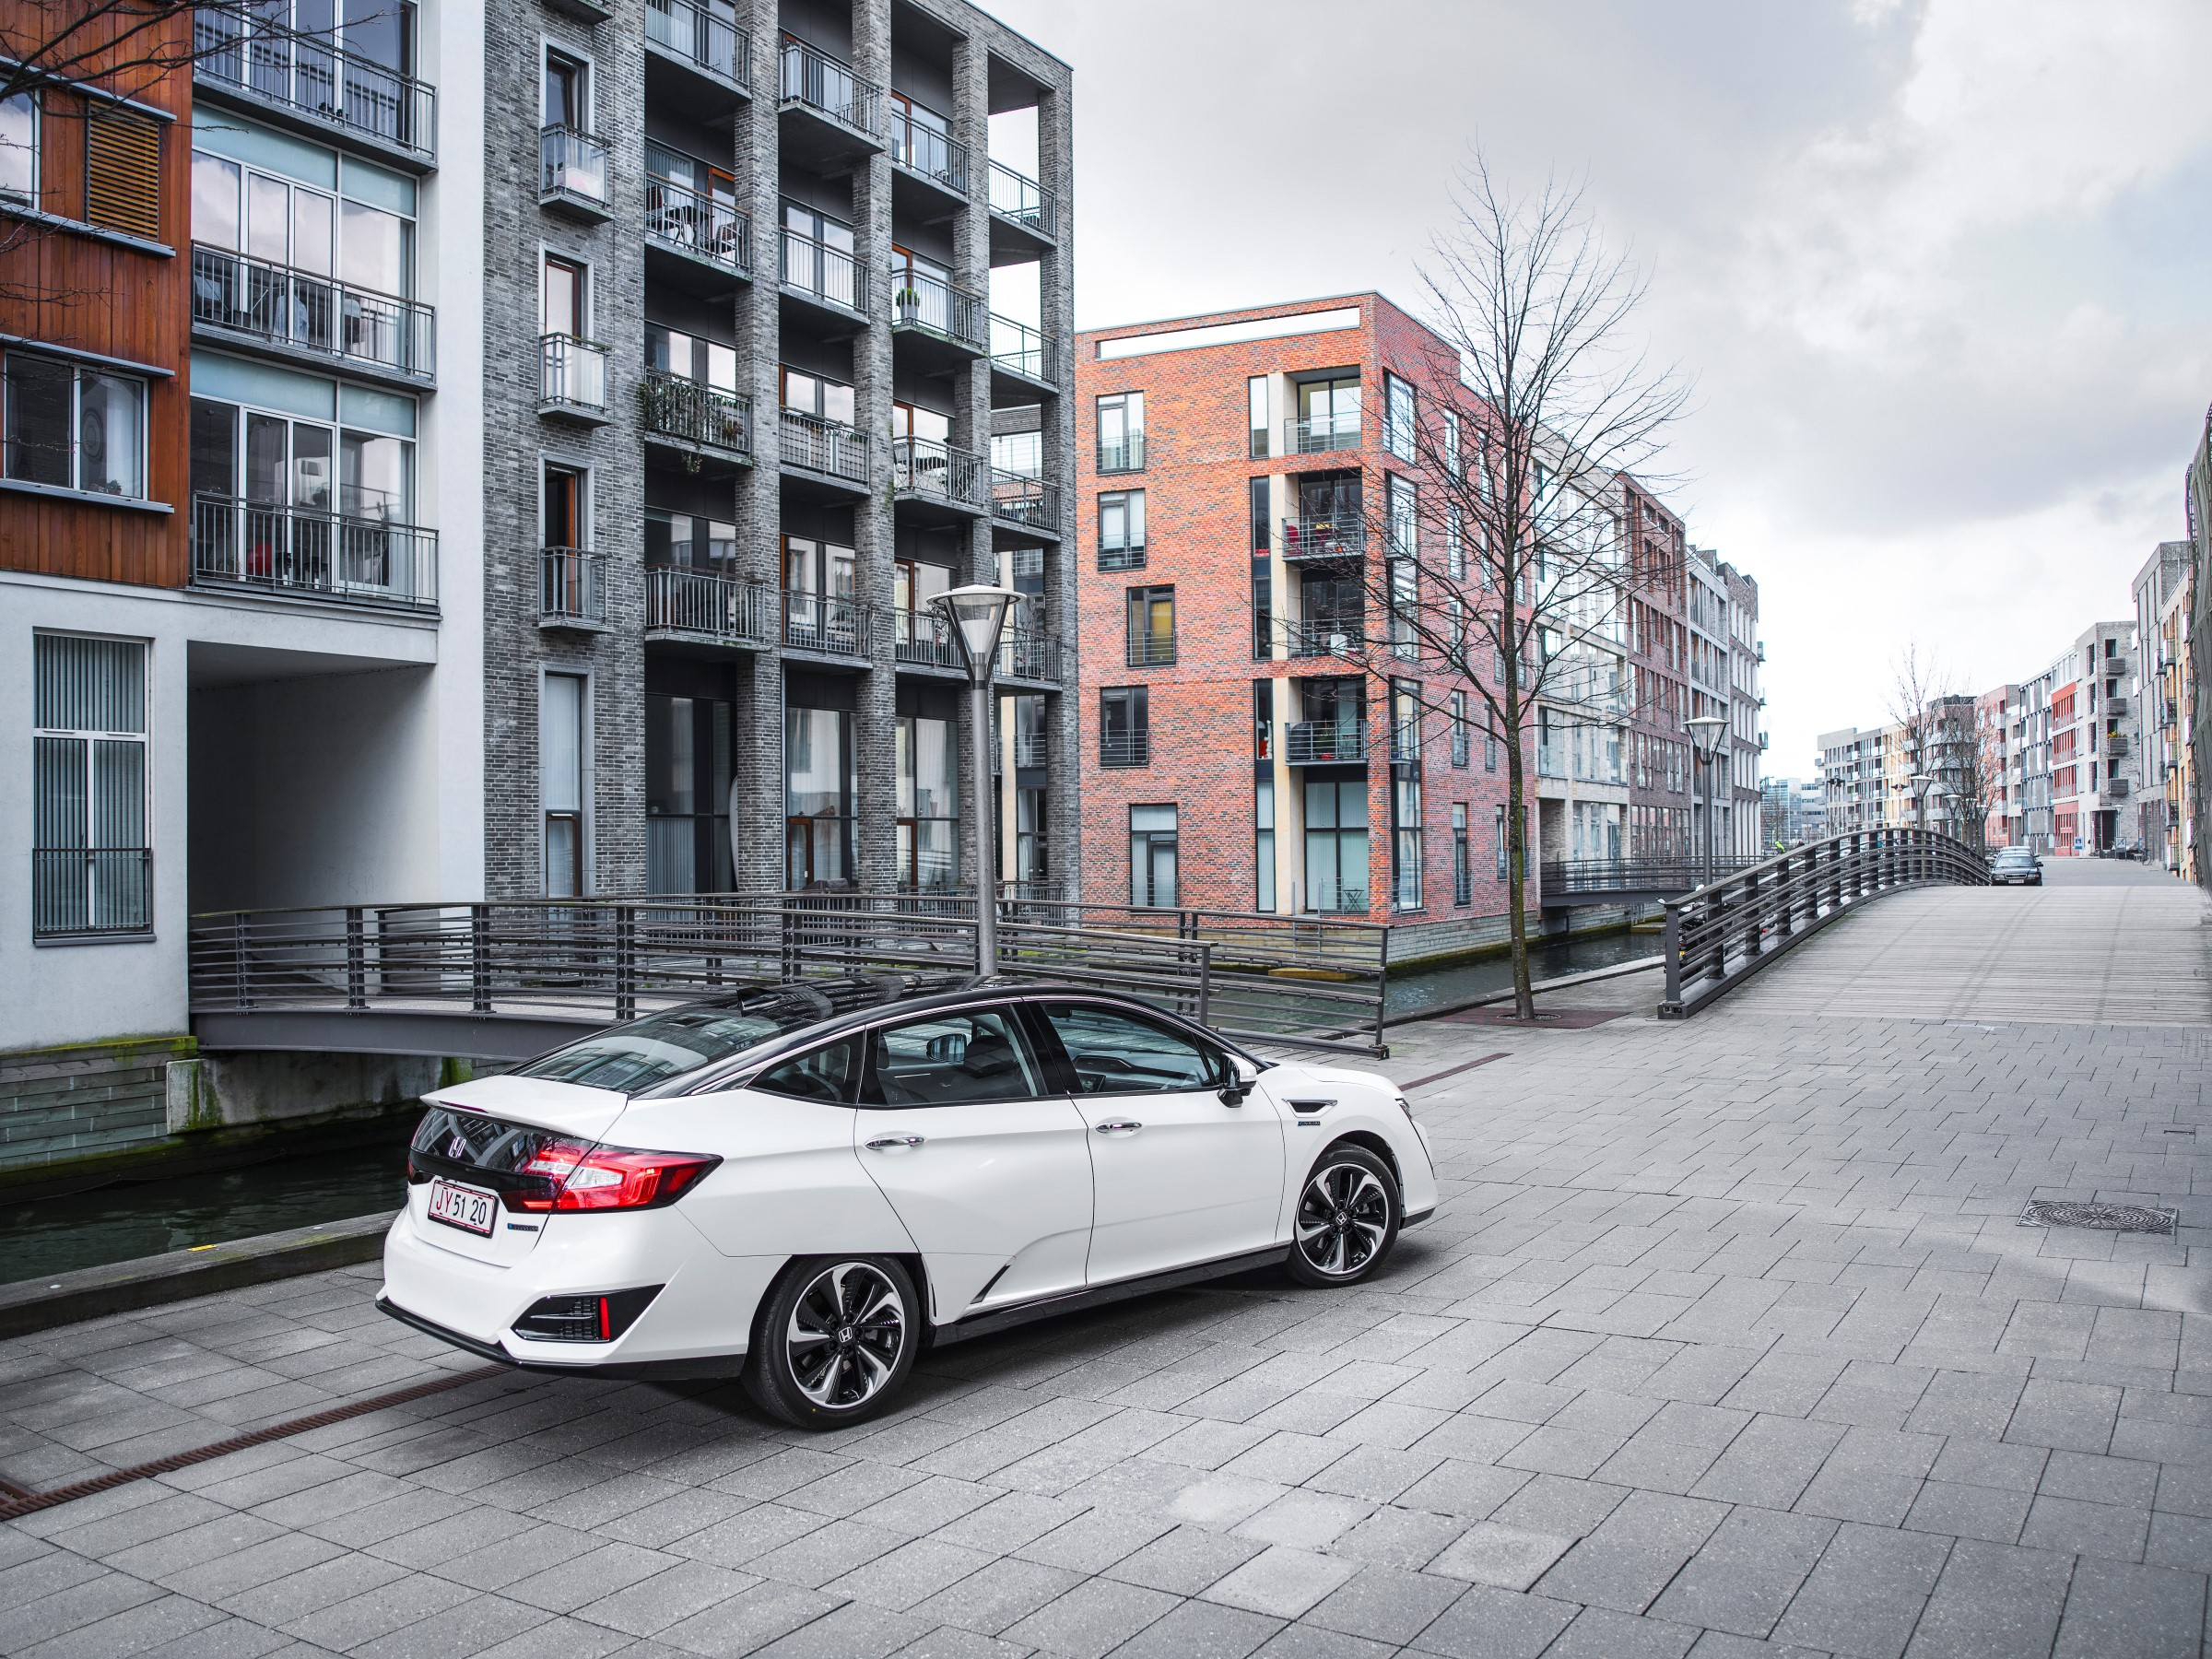 Honda Clarity Fuel Cell review - prices, specs and 0-60 time